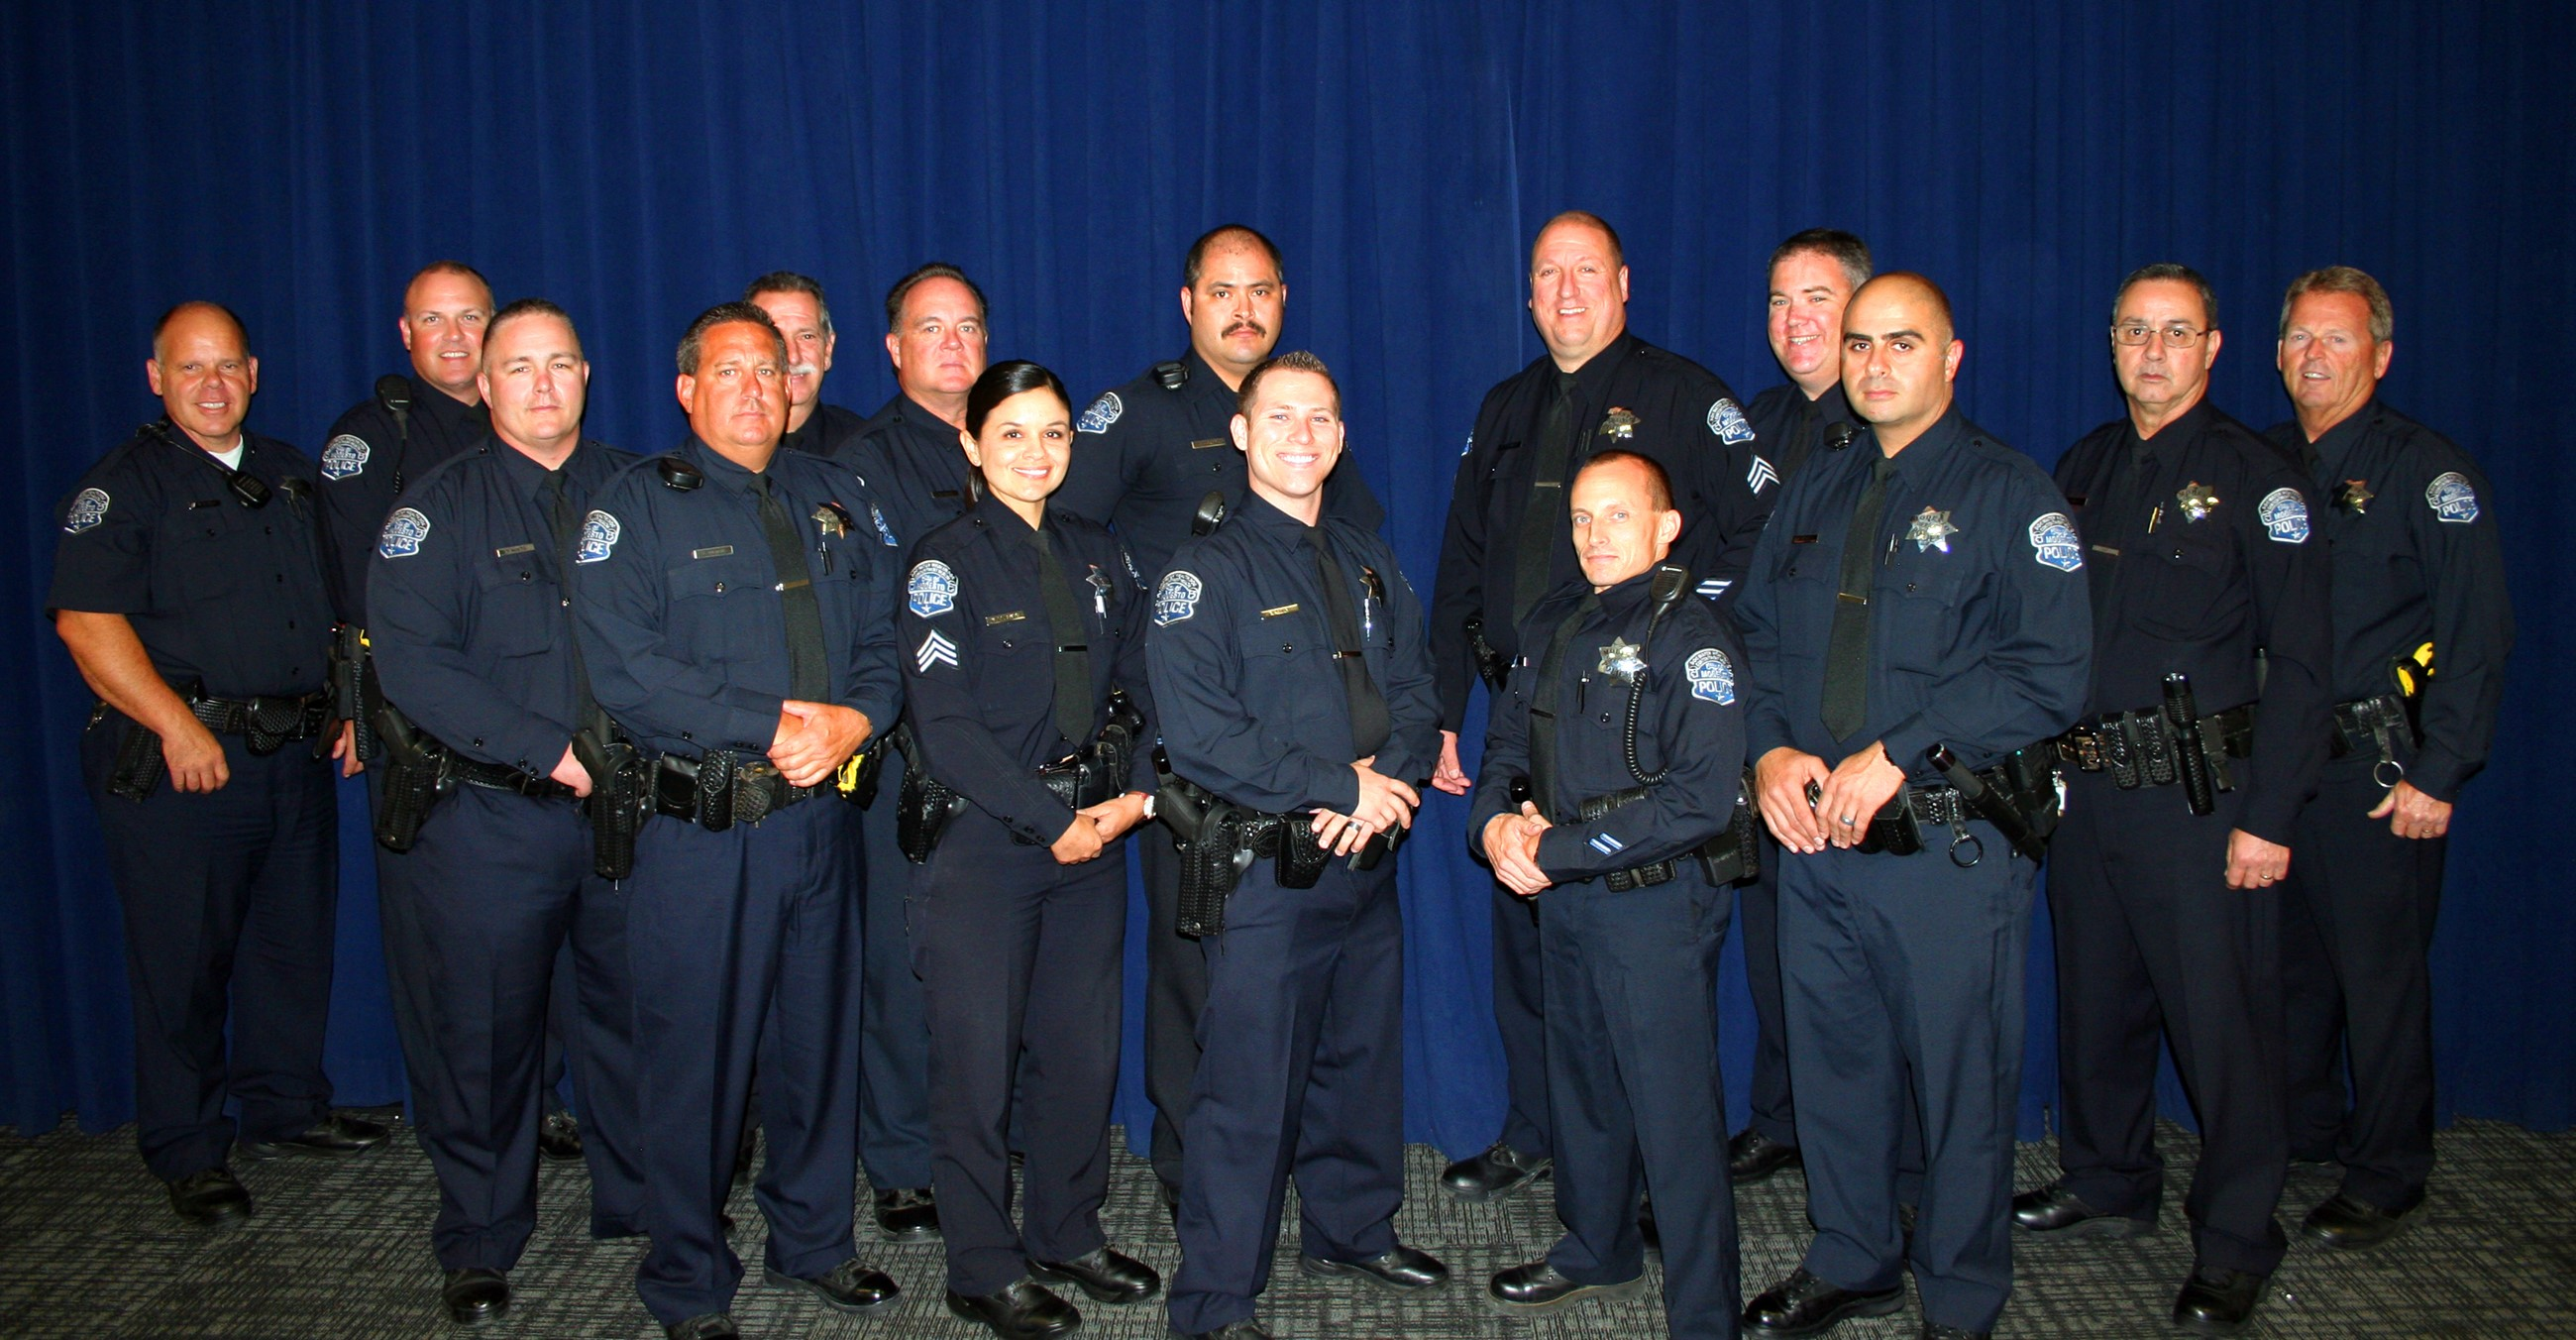 Reserve Officer Unit | Modesto, CA